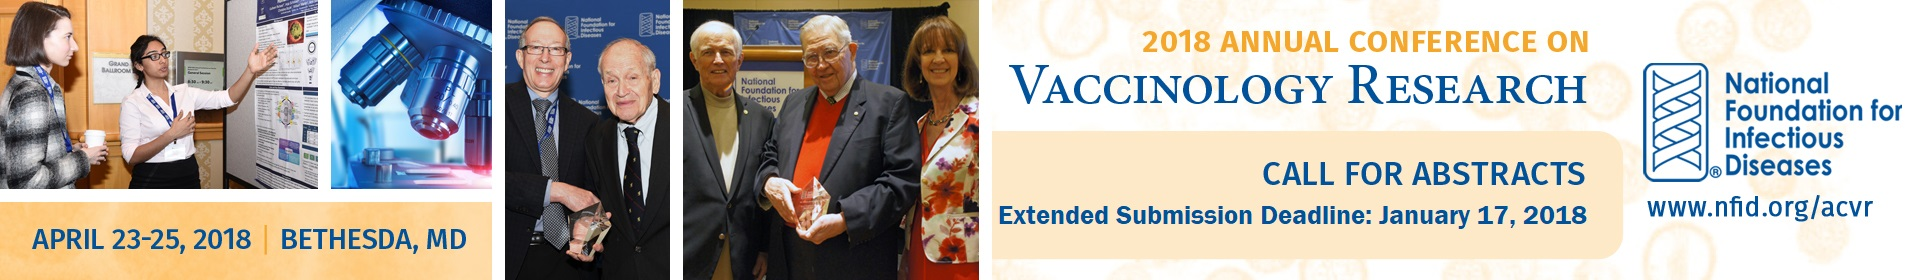 Call for Abstract Extended Deadline Banner